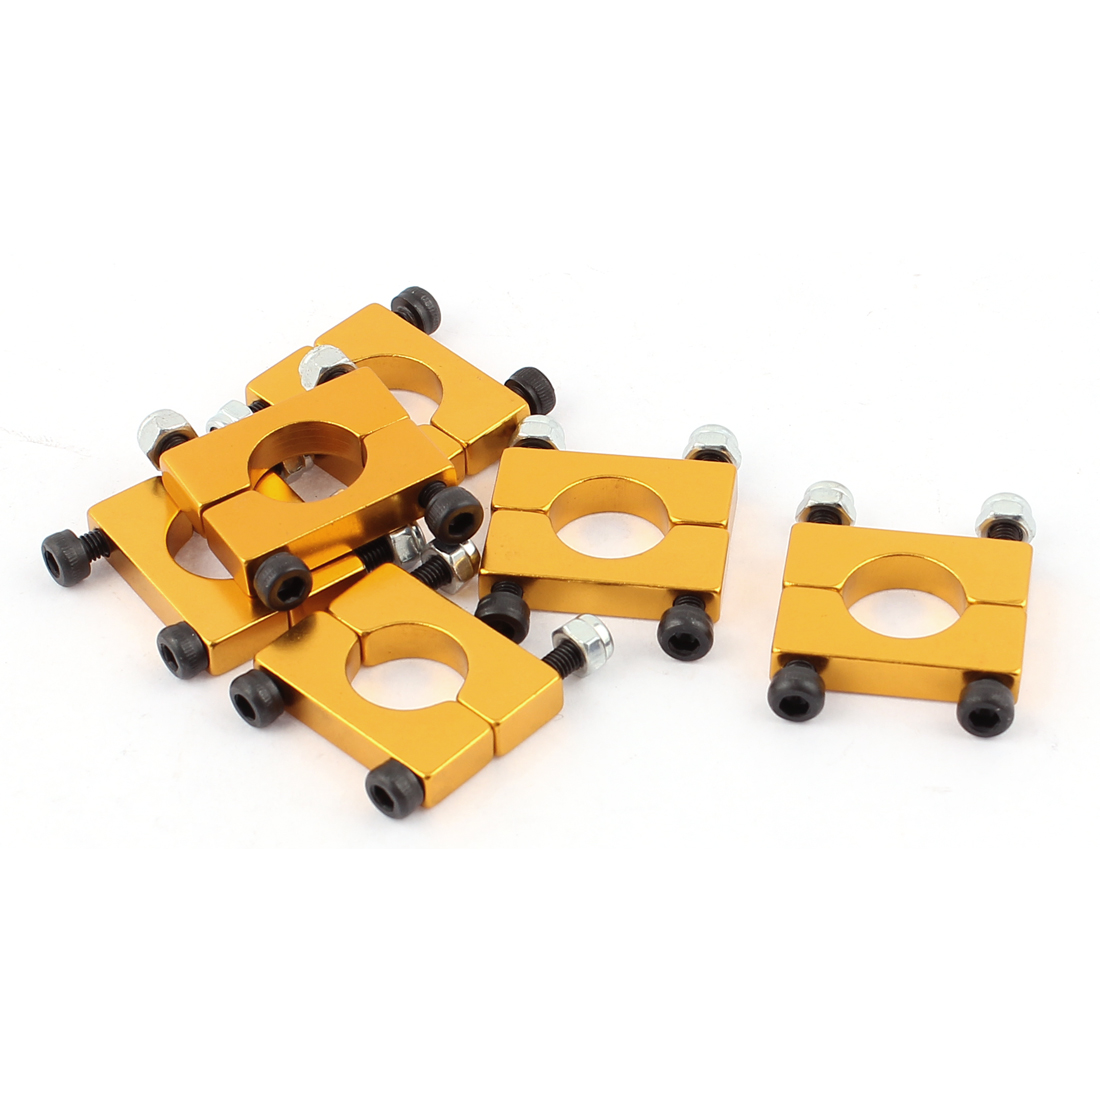 6Pcs 12mm Airplane Tube Clip for Carbon Fiber Quad copter Golden